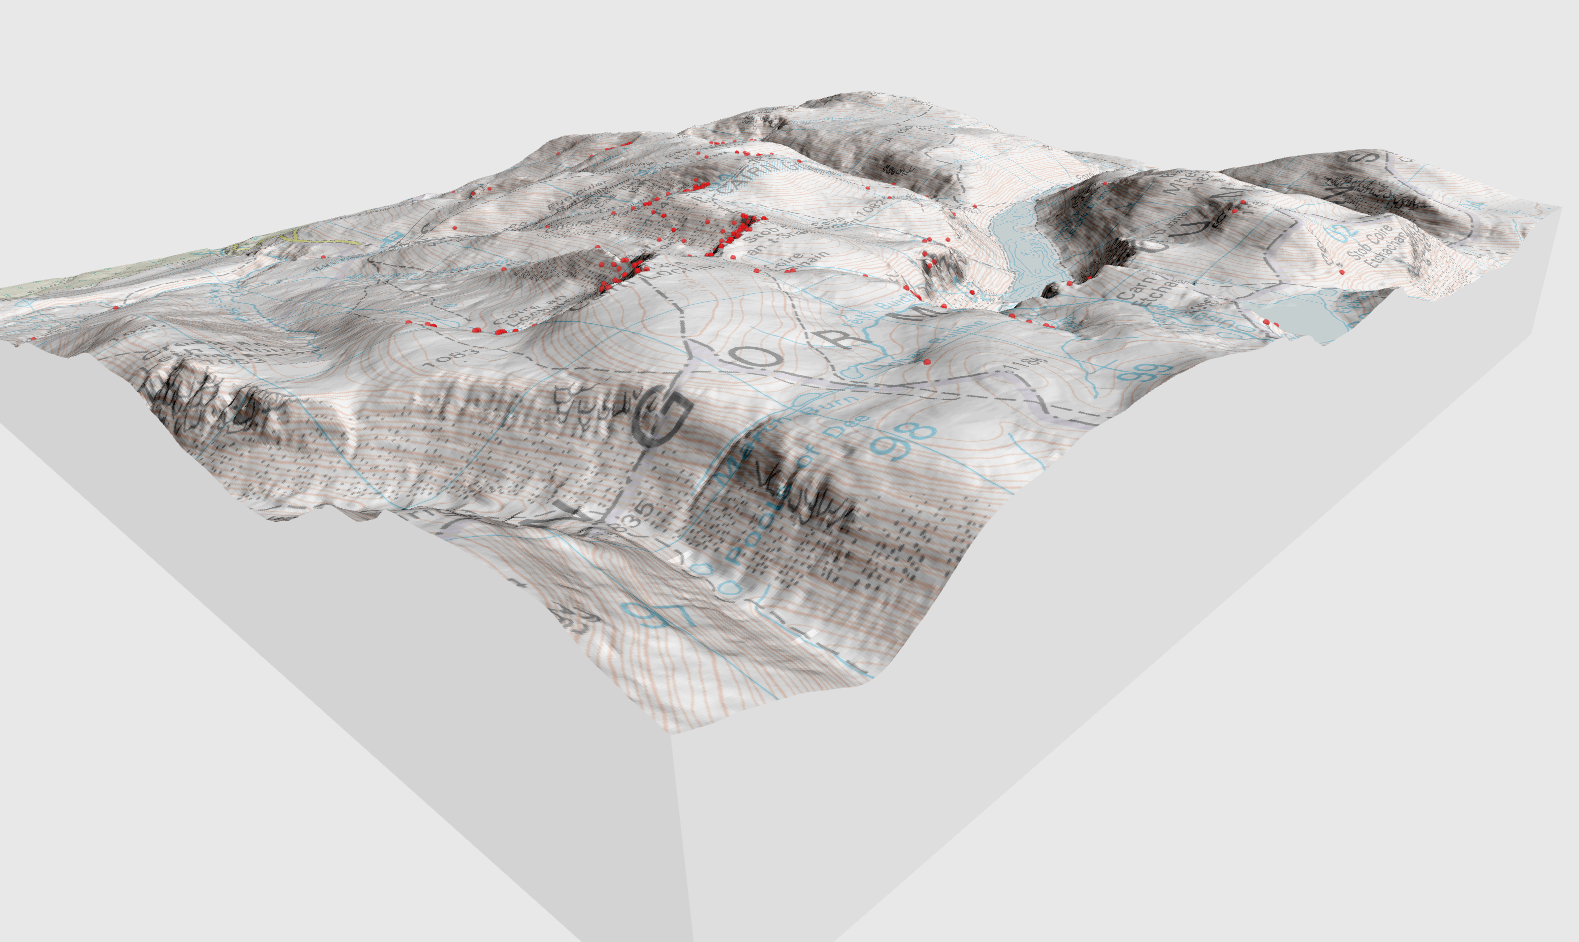 Stats, Maps n Pix: Interactive Terrain Mapping in QGIS